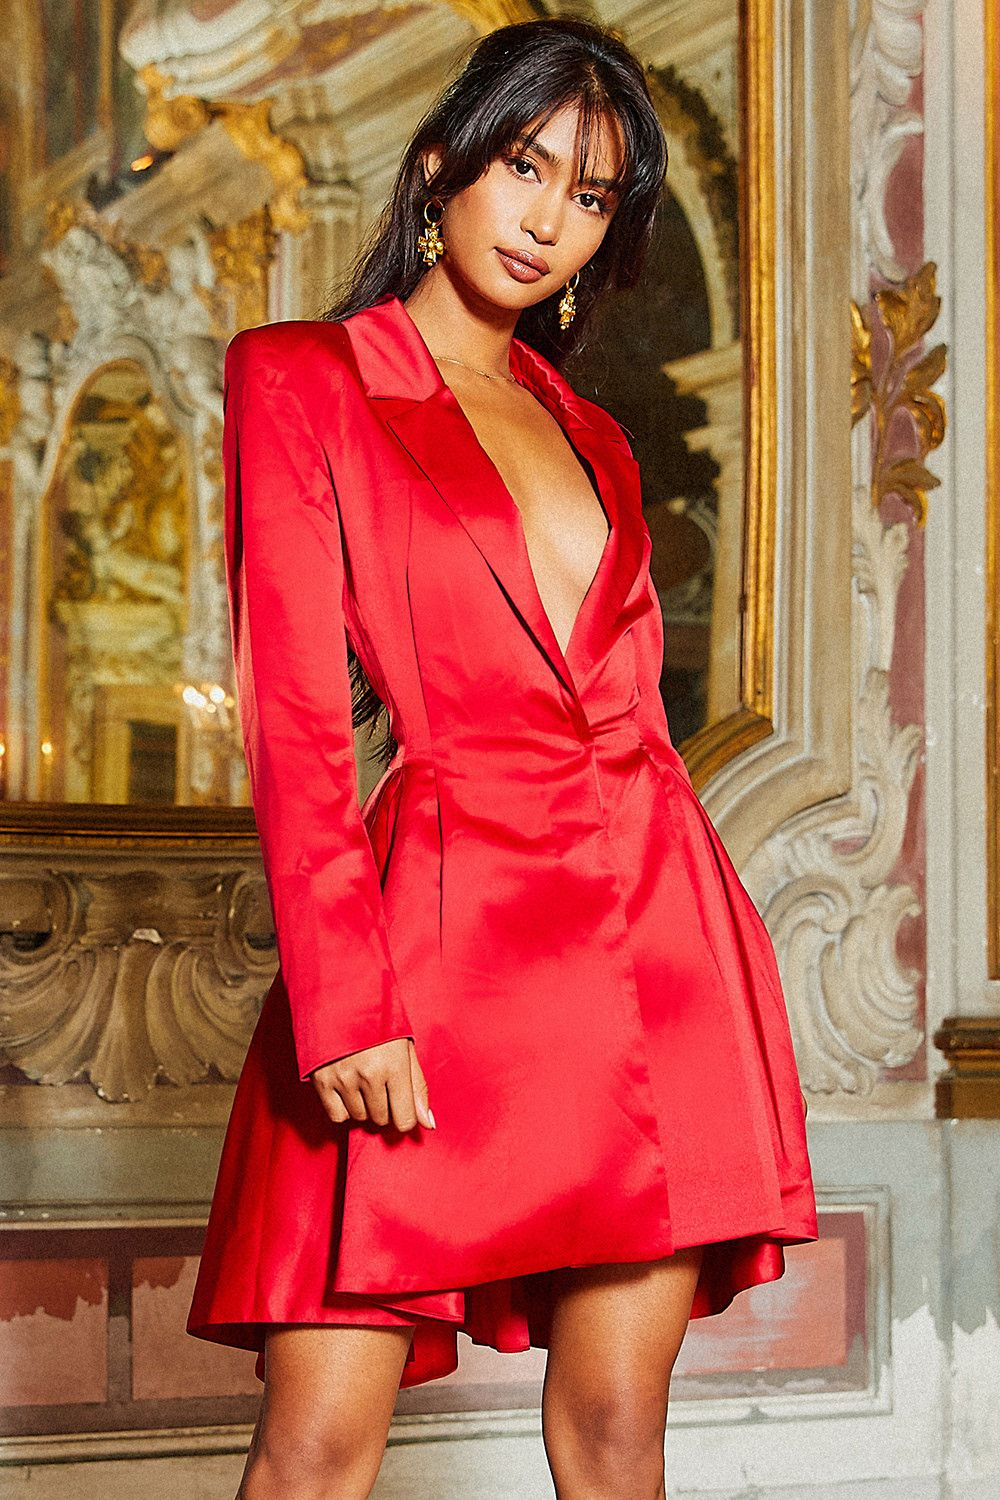 39232eb0639 Clothing   Structured Dresses    Simoneta  Red Satin Tailored Jacket Dress.  House of CB